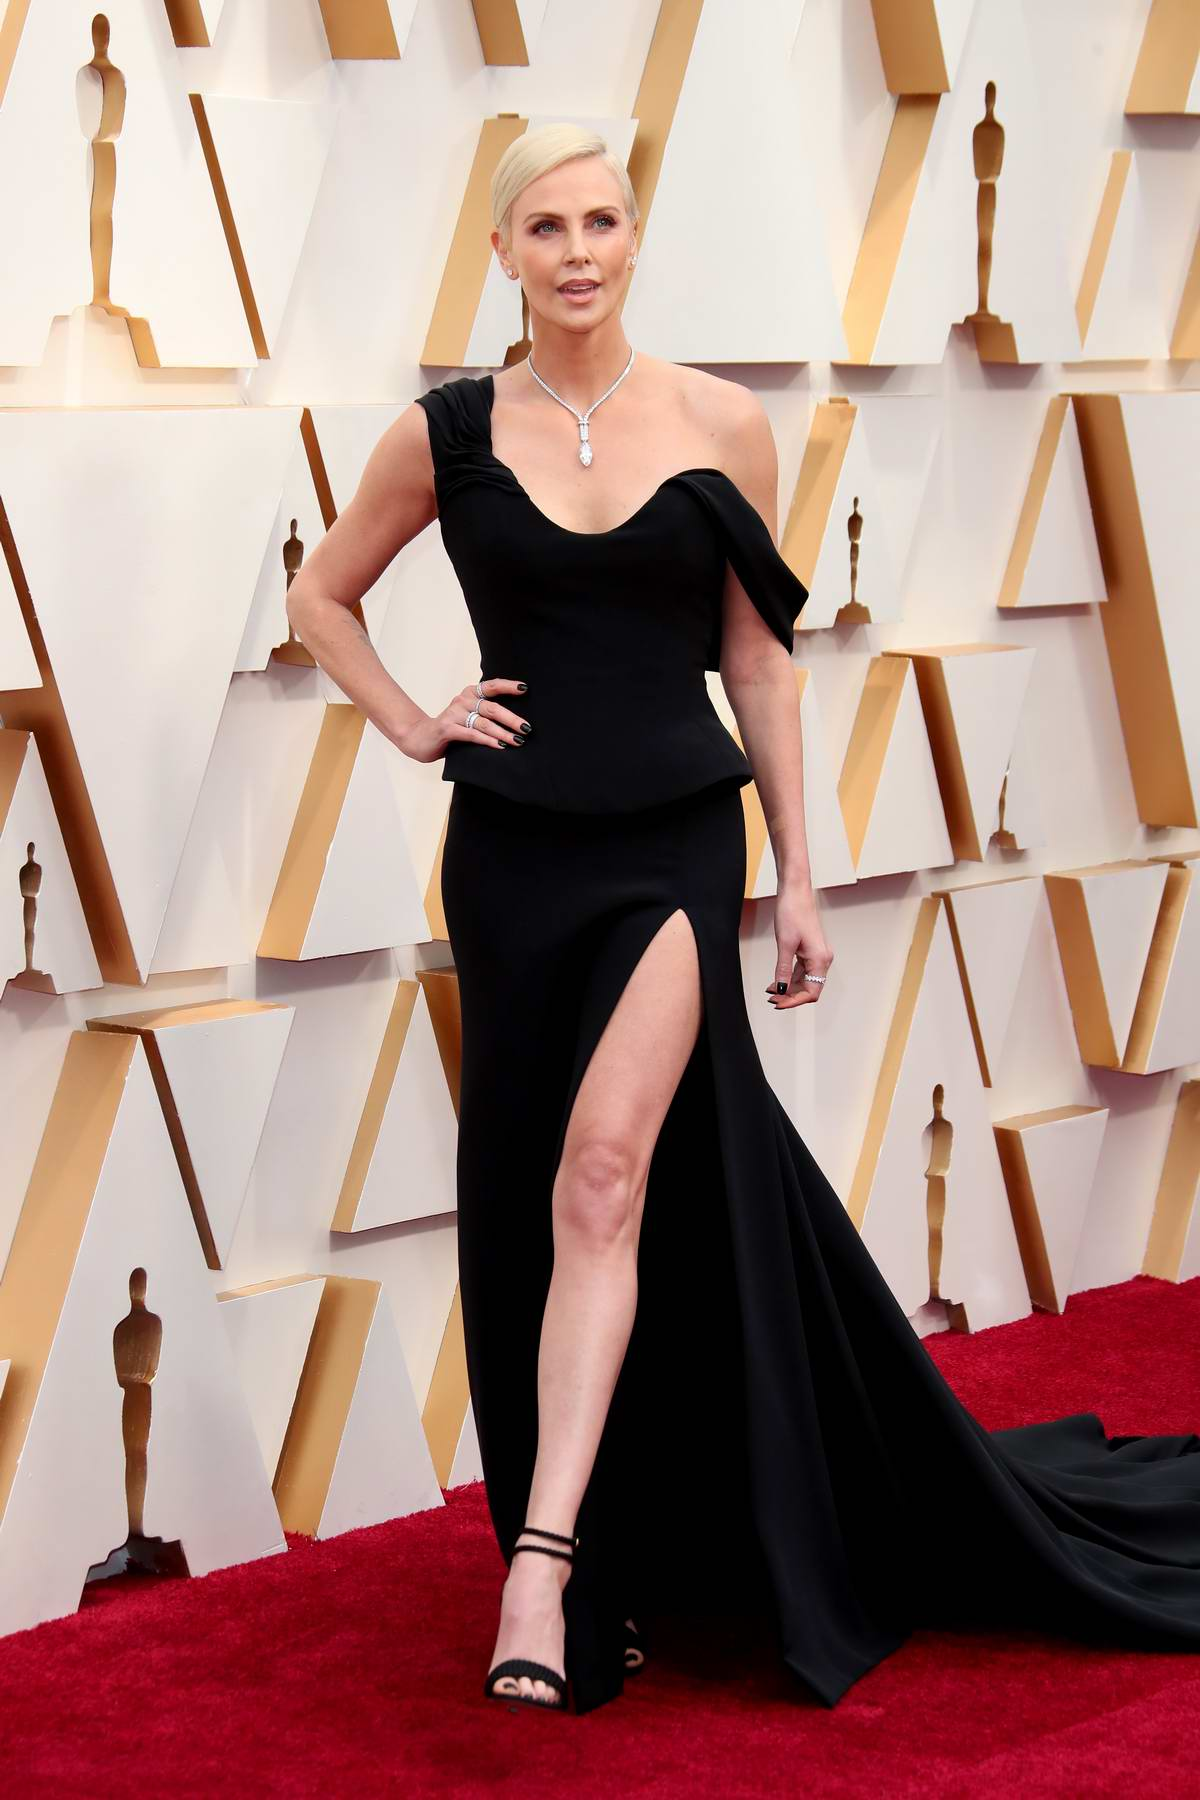 Charlize Theron attends the 92nd Annual Academy Awards at Dolby Theatre in Los Angeles